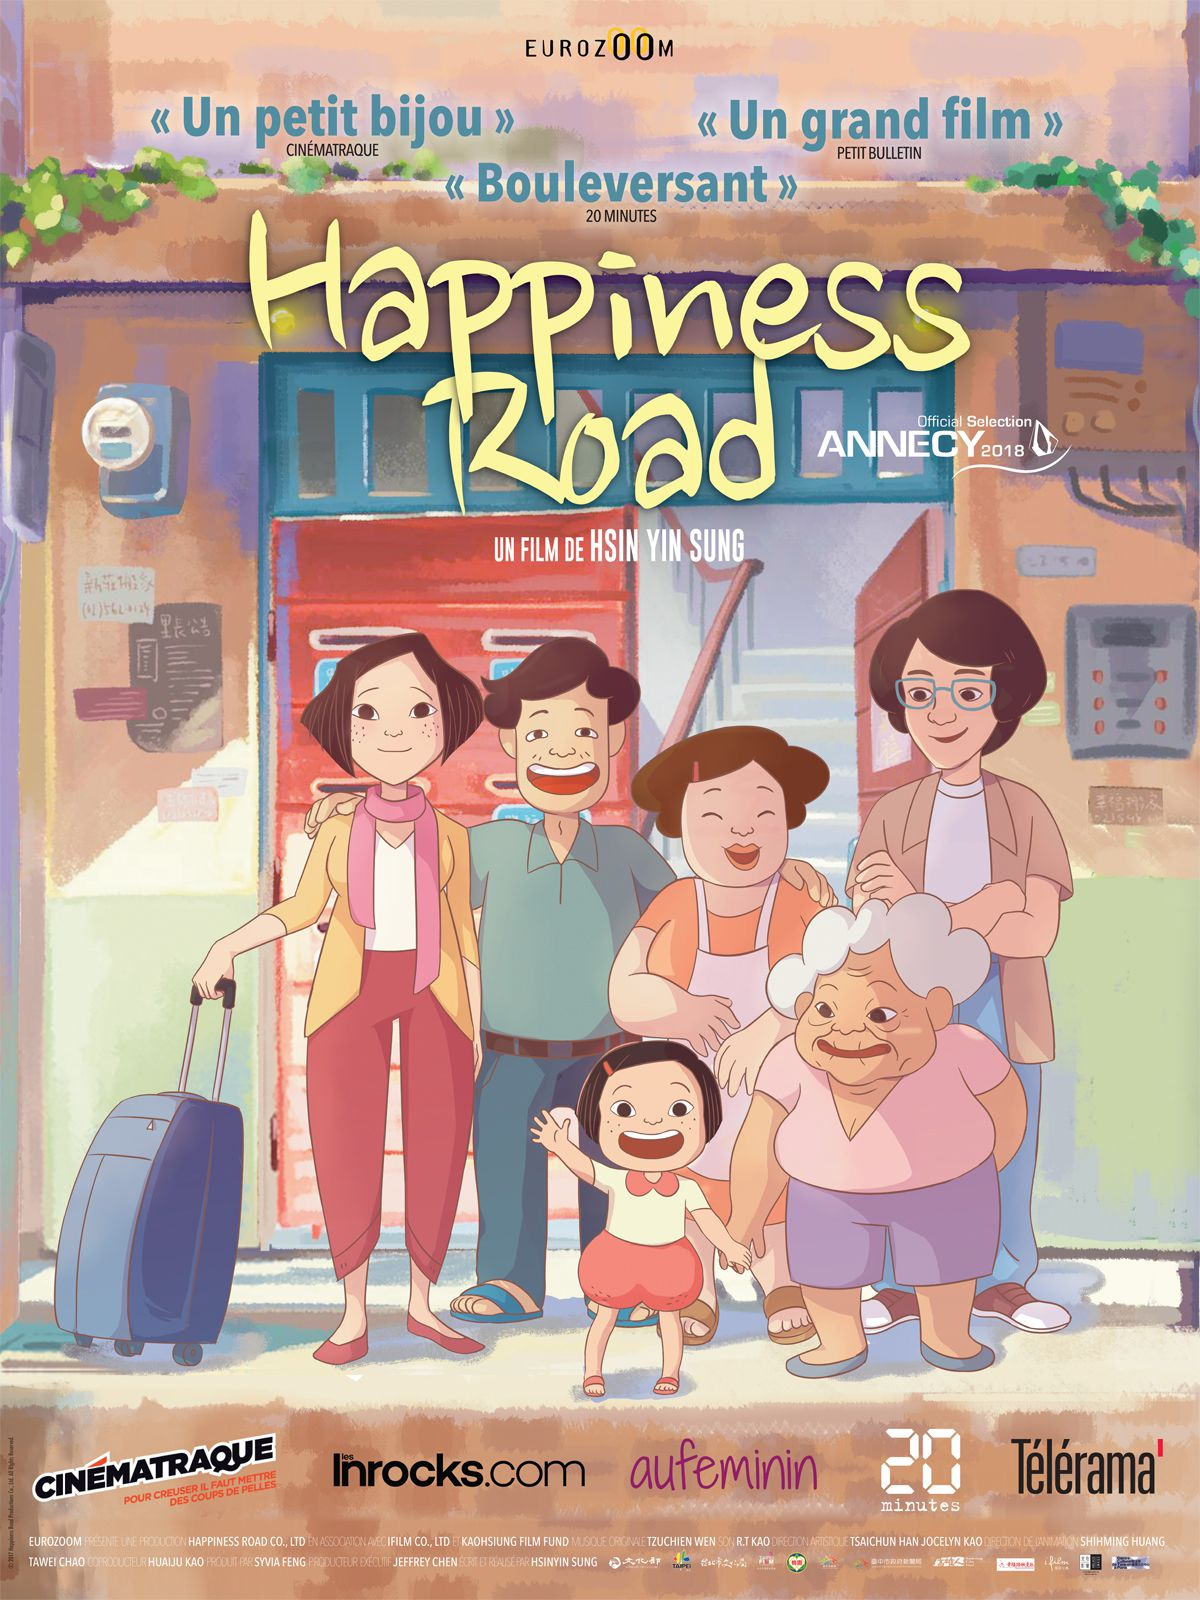 Happiness Road - Film (2018) streaming VF gratuit complet